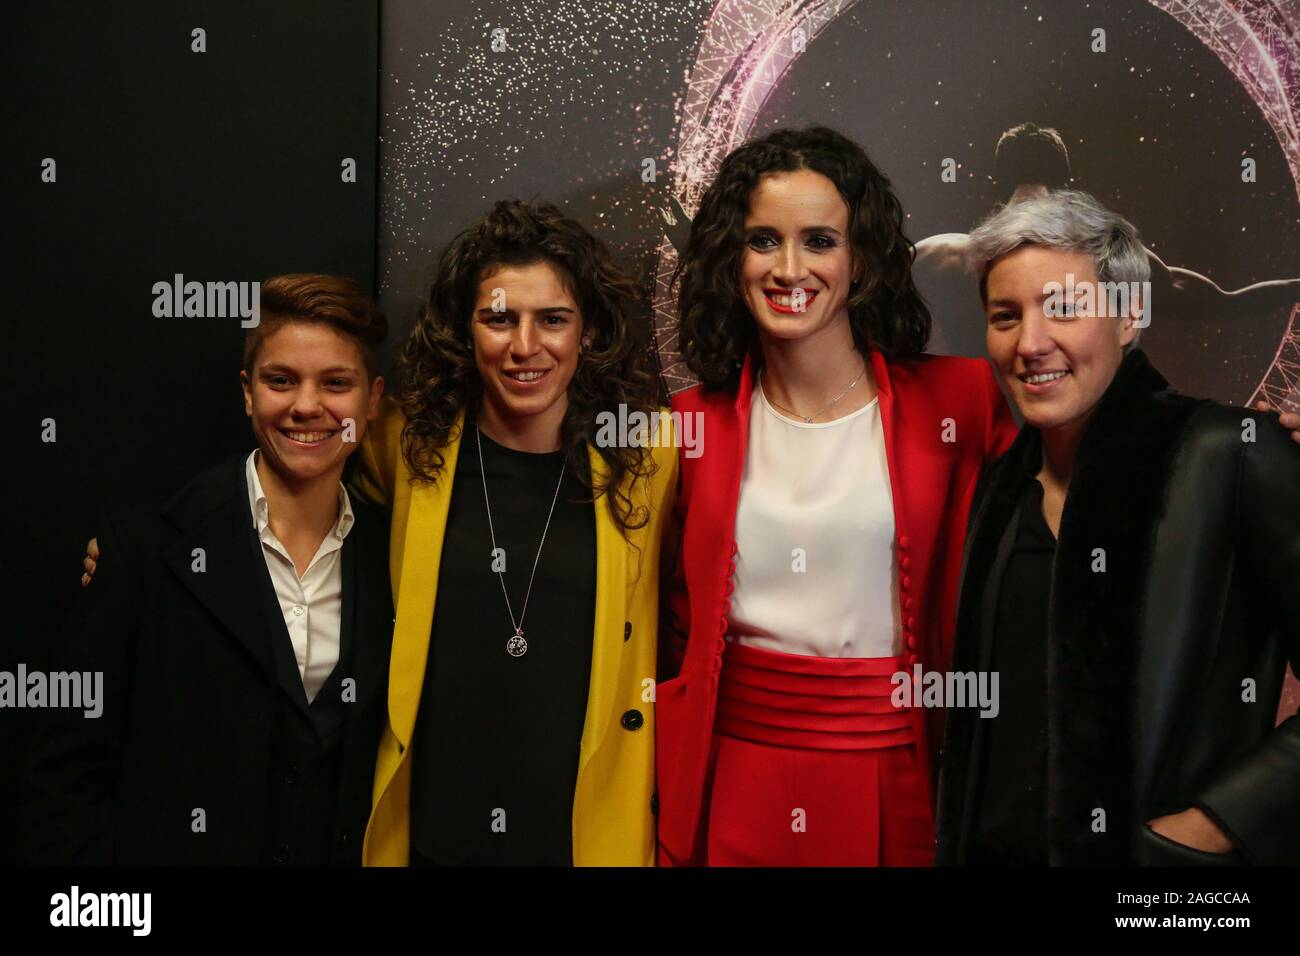 bonansea, bergamaschi, giuliano,terenzio during Gazzetta Sports Awards , Events in Milano, Italy, December 18 2019 Stock Photo